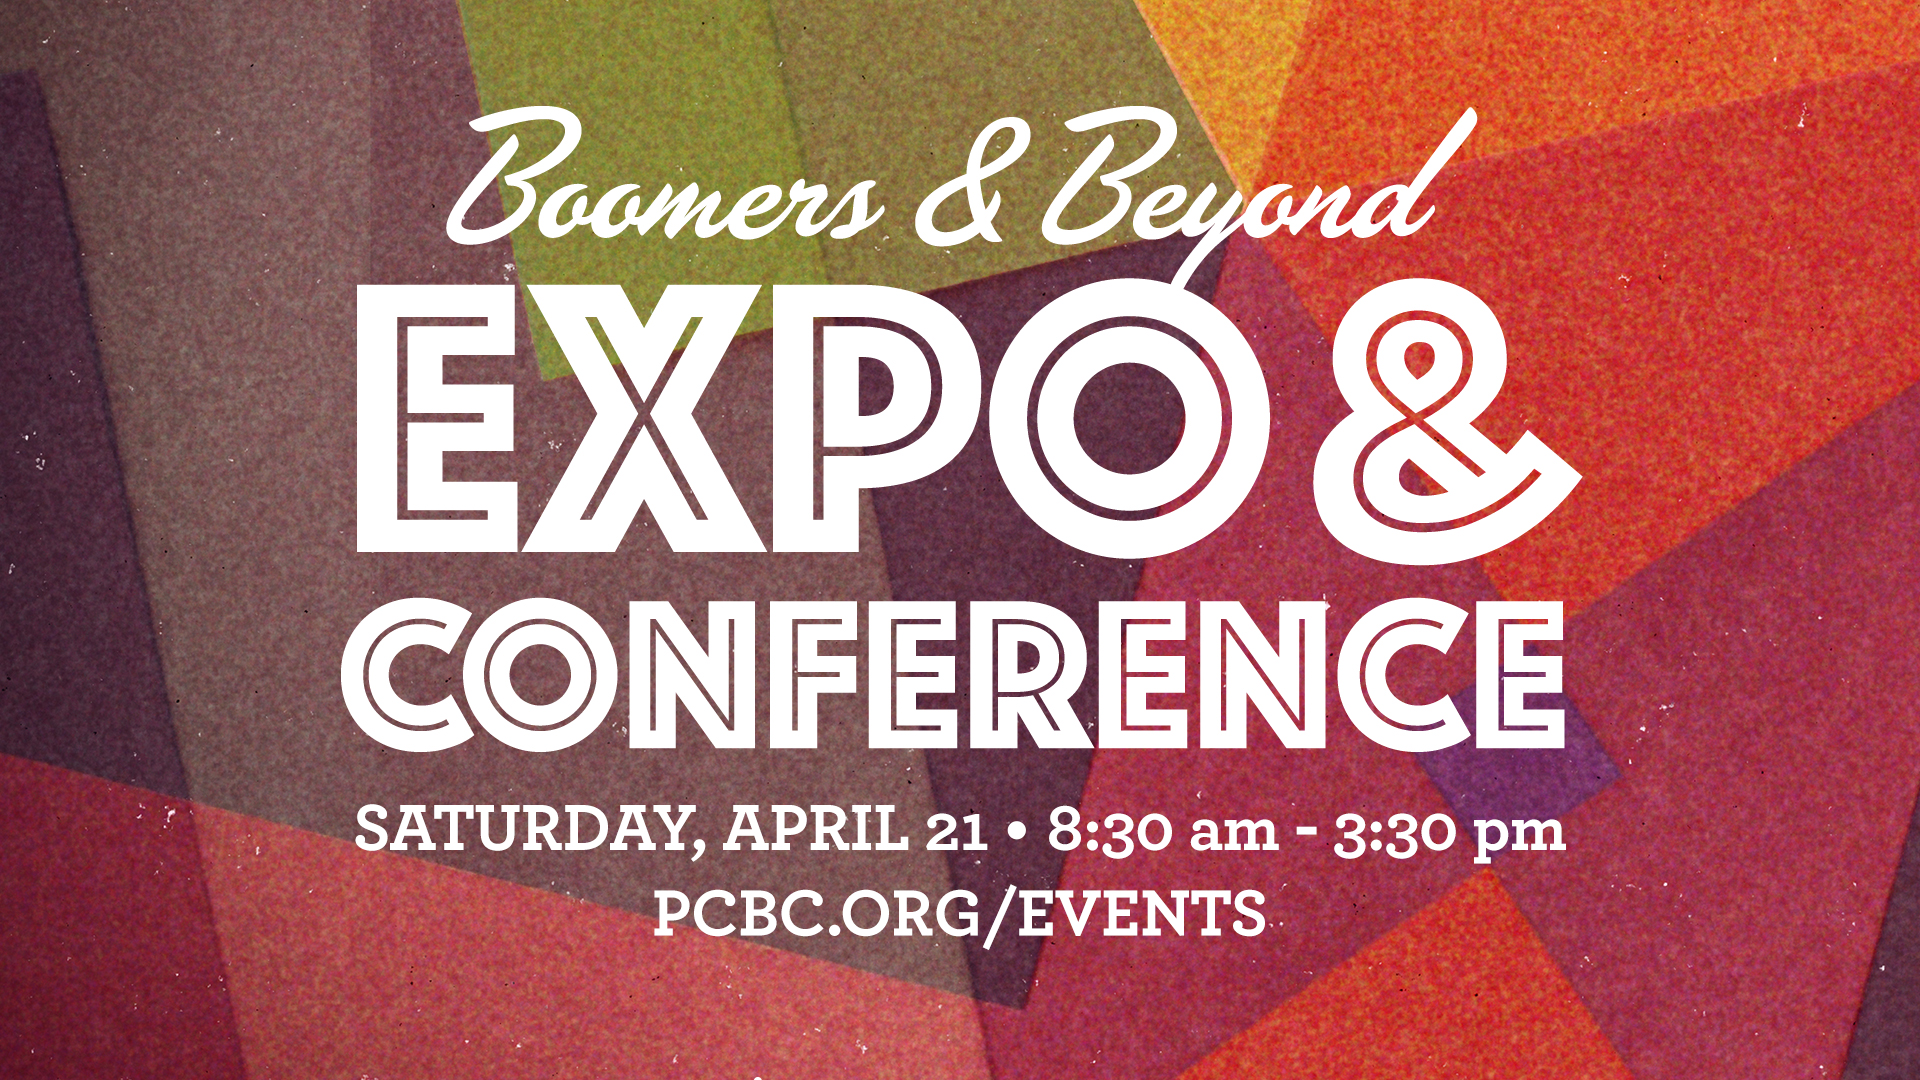 Boomers & Beyond Expo